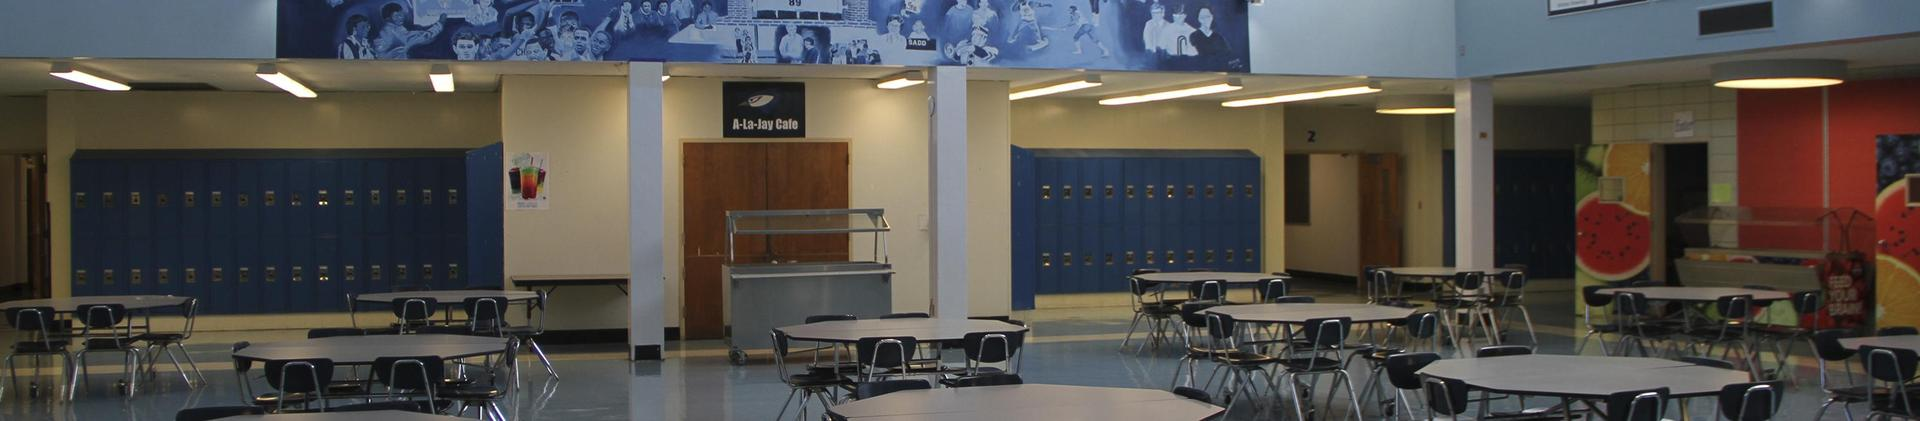 CHS Commons